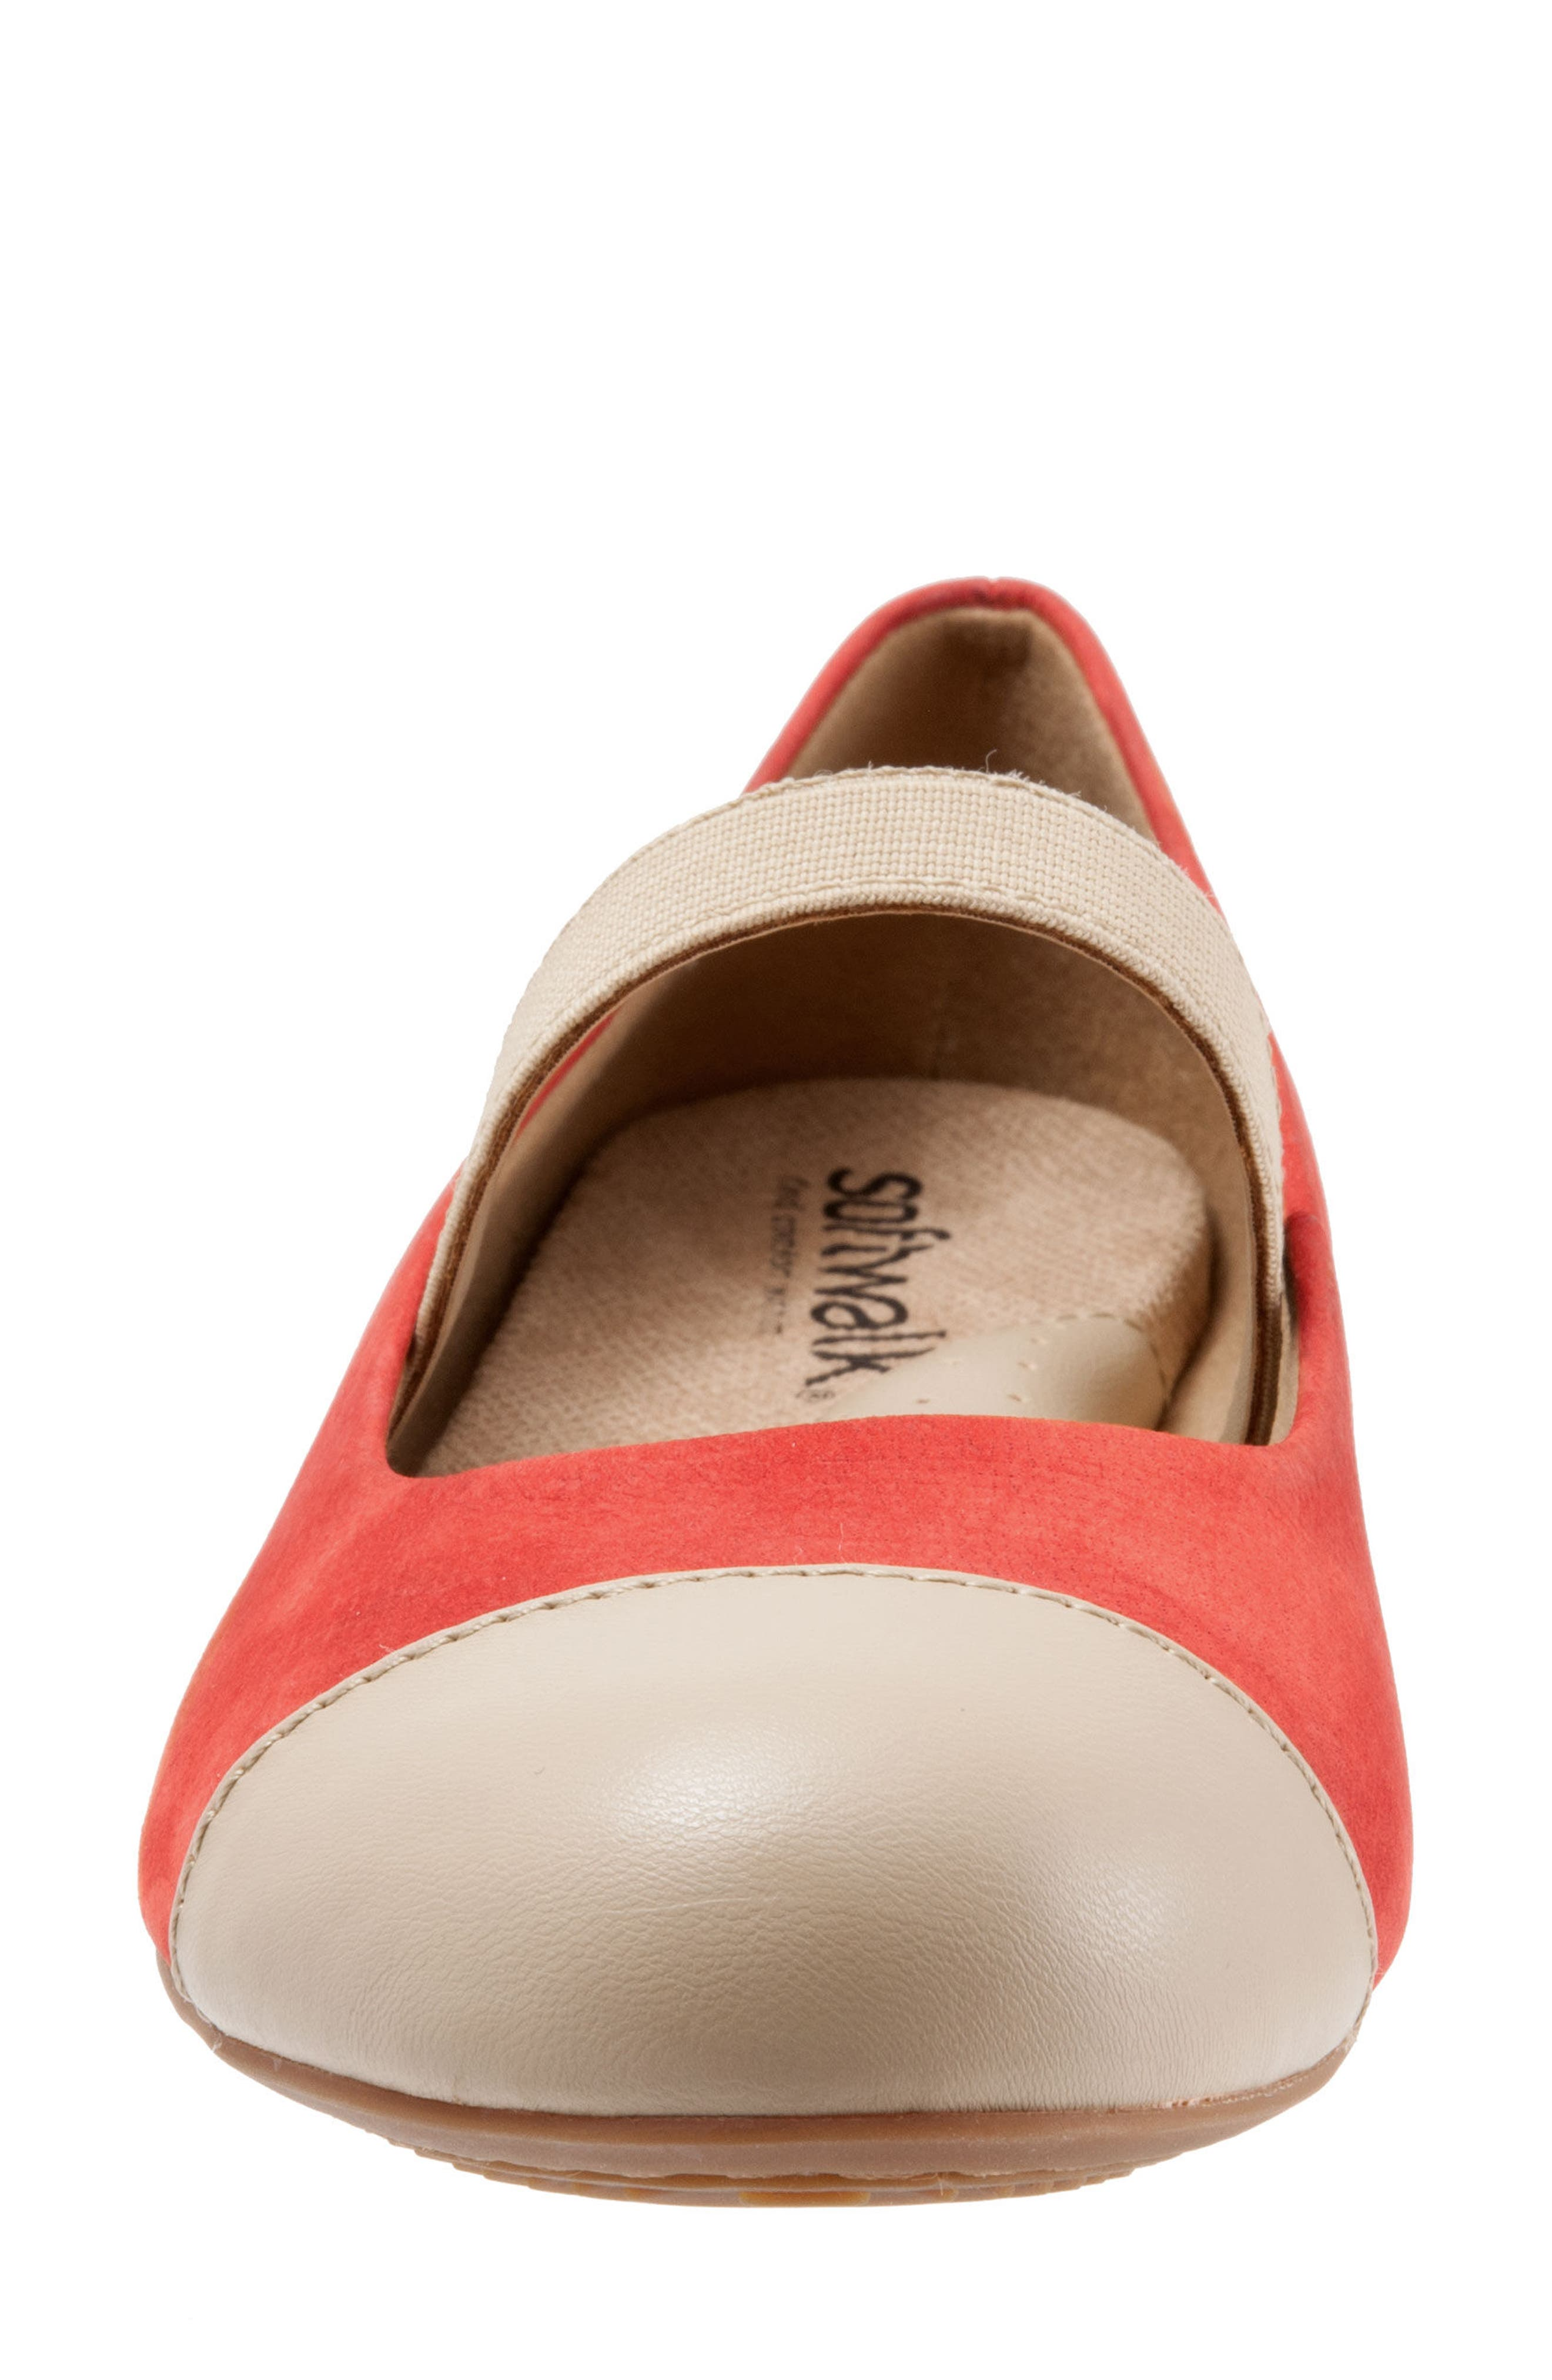 Napa Mary Jane Flat,                             Alternate thumbnail 6, color,                             Red/ Nude Leather